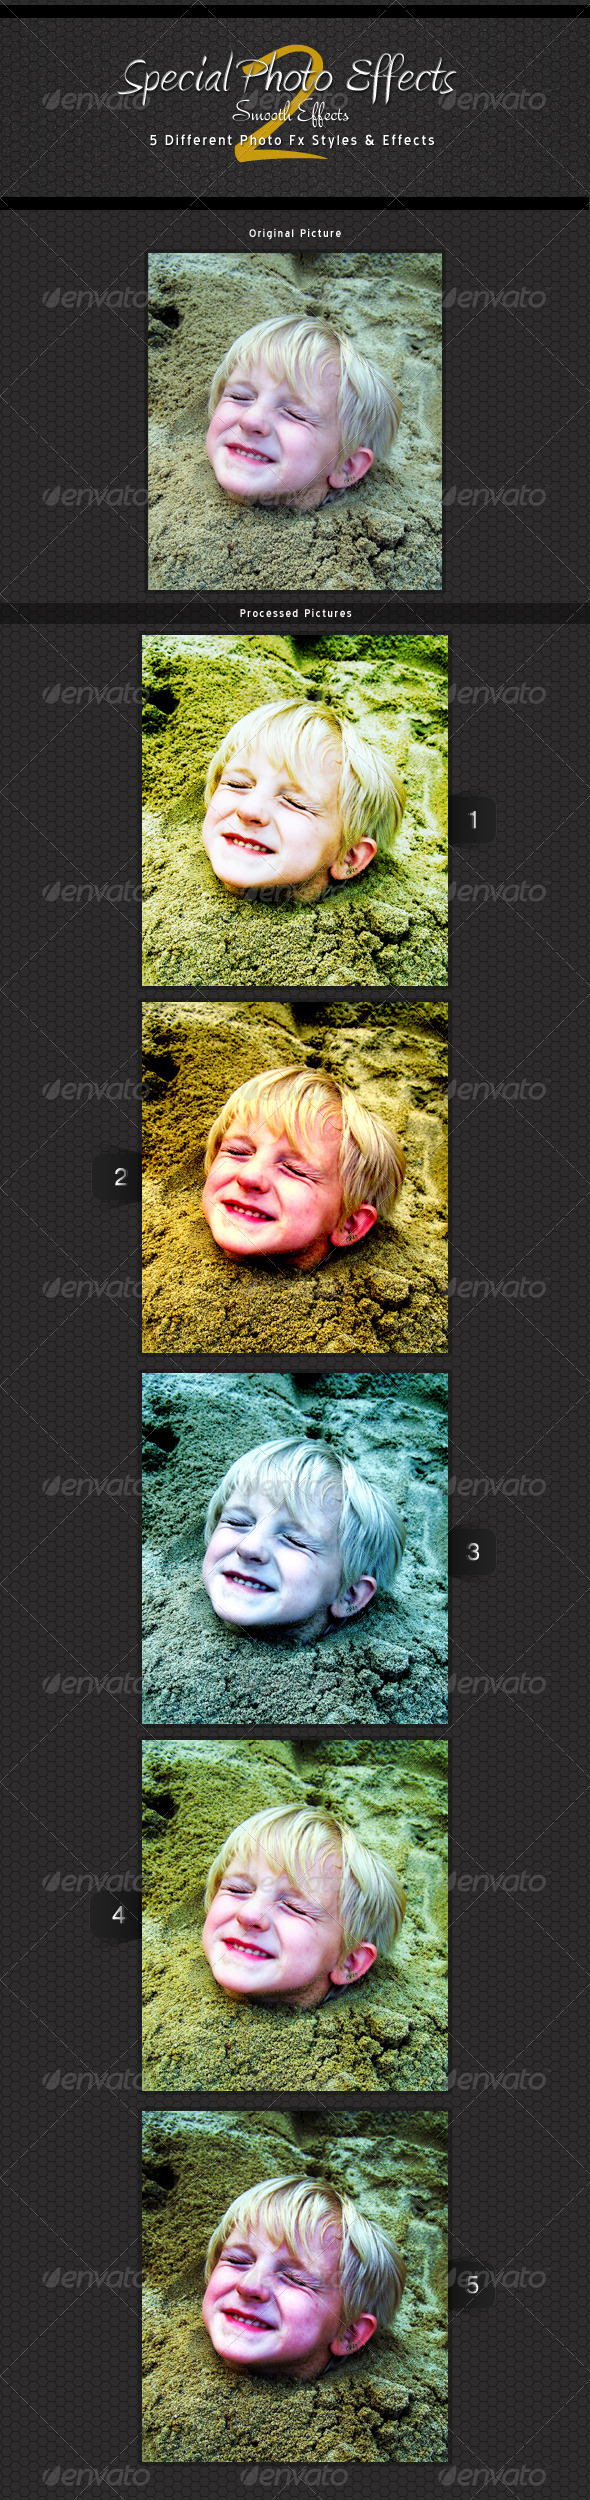 GraphicRiver Special Photo Effects 2 smooth Actions 3609309